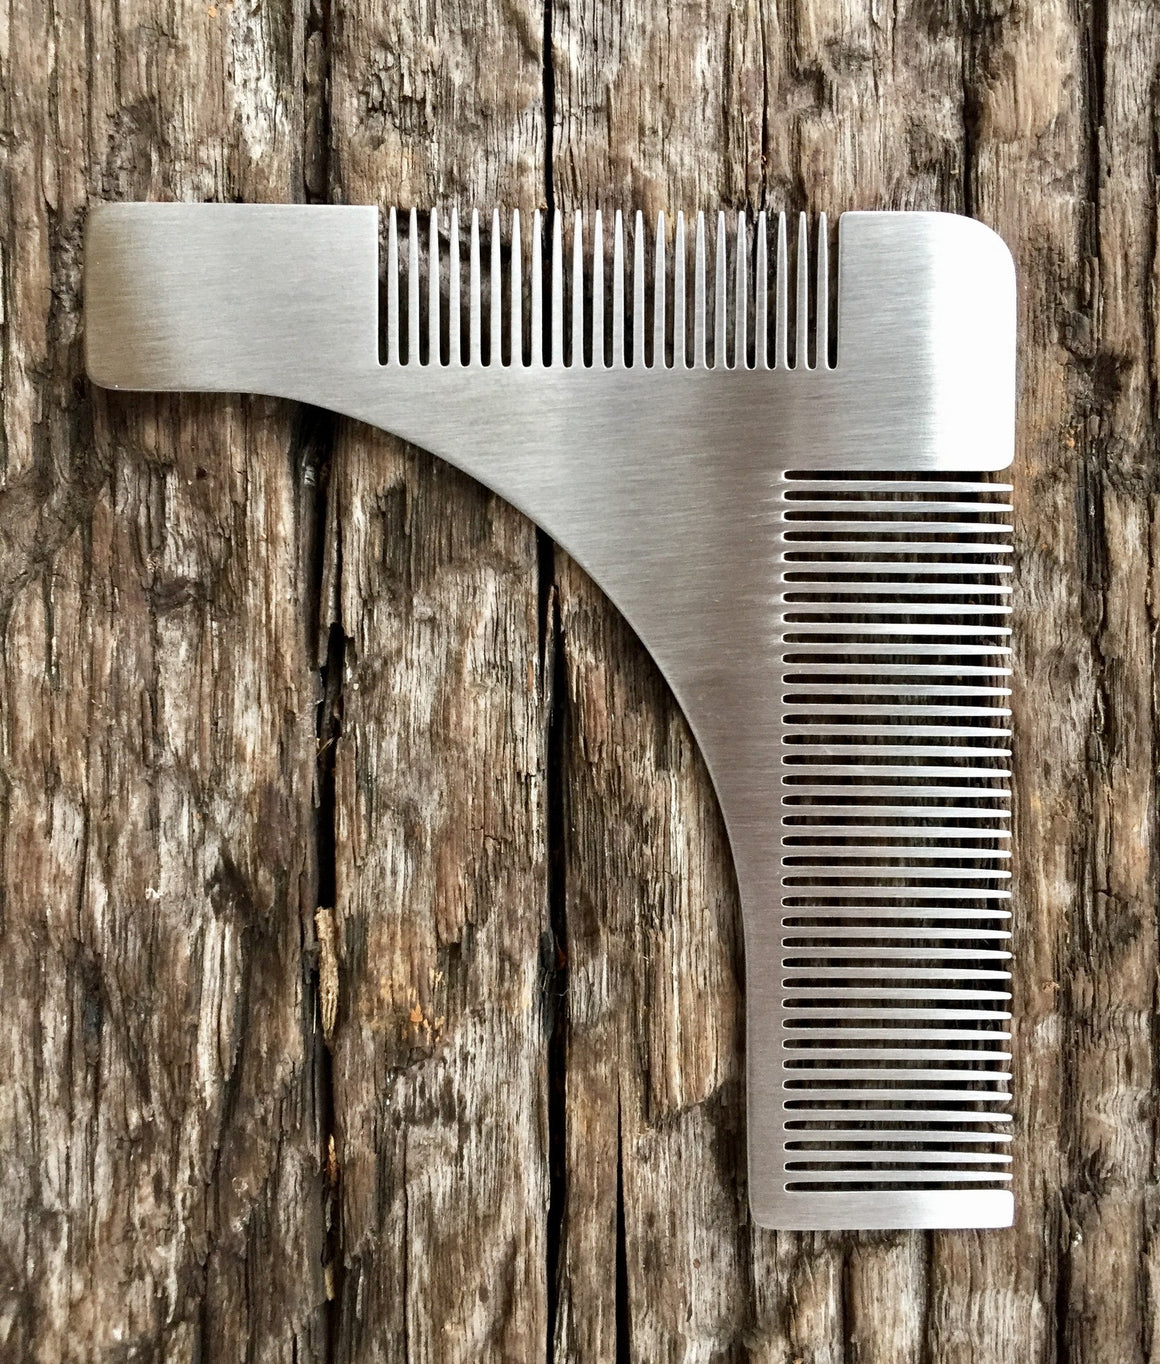 Beard Combs - B.T.T. (Beard Trimming Tool)